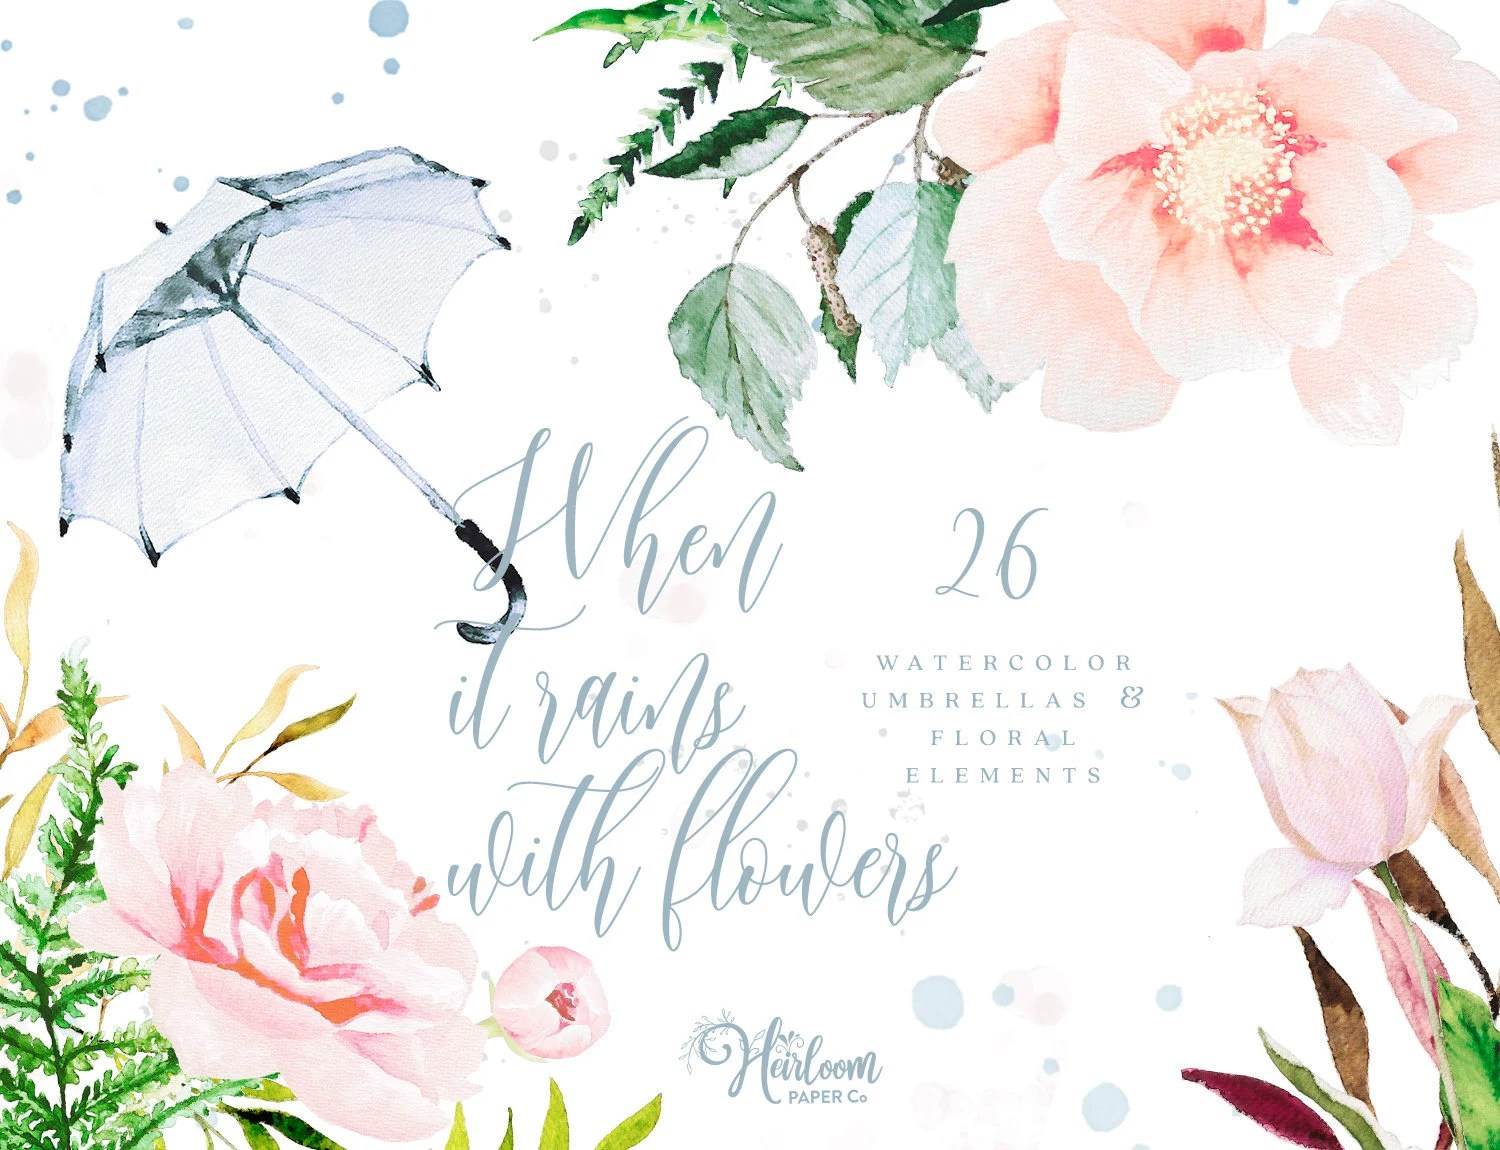 Baby Dankeskarten Diy Watercolor Floral Elements Clipart Umbrella Clipart Peony Clipart Watercolor Fern Greenery Flower Clipart When It Rains With Flowers